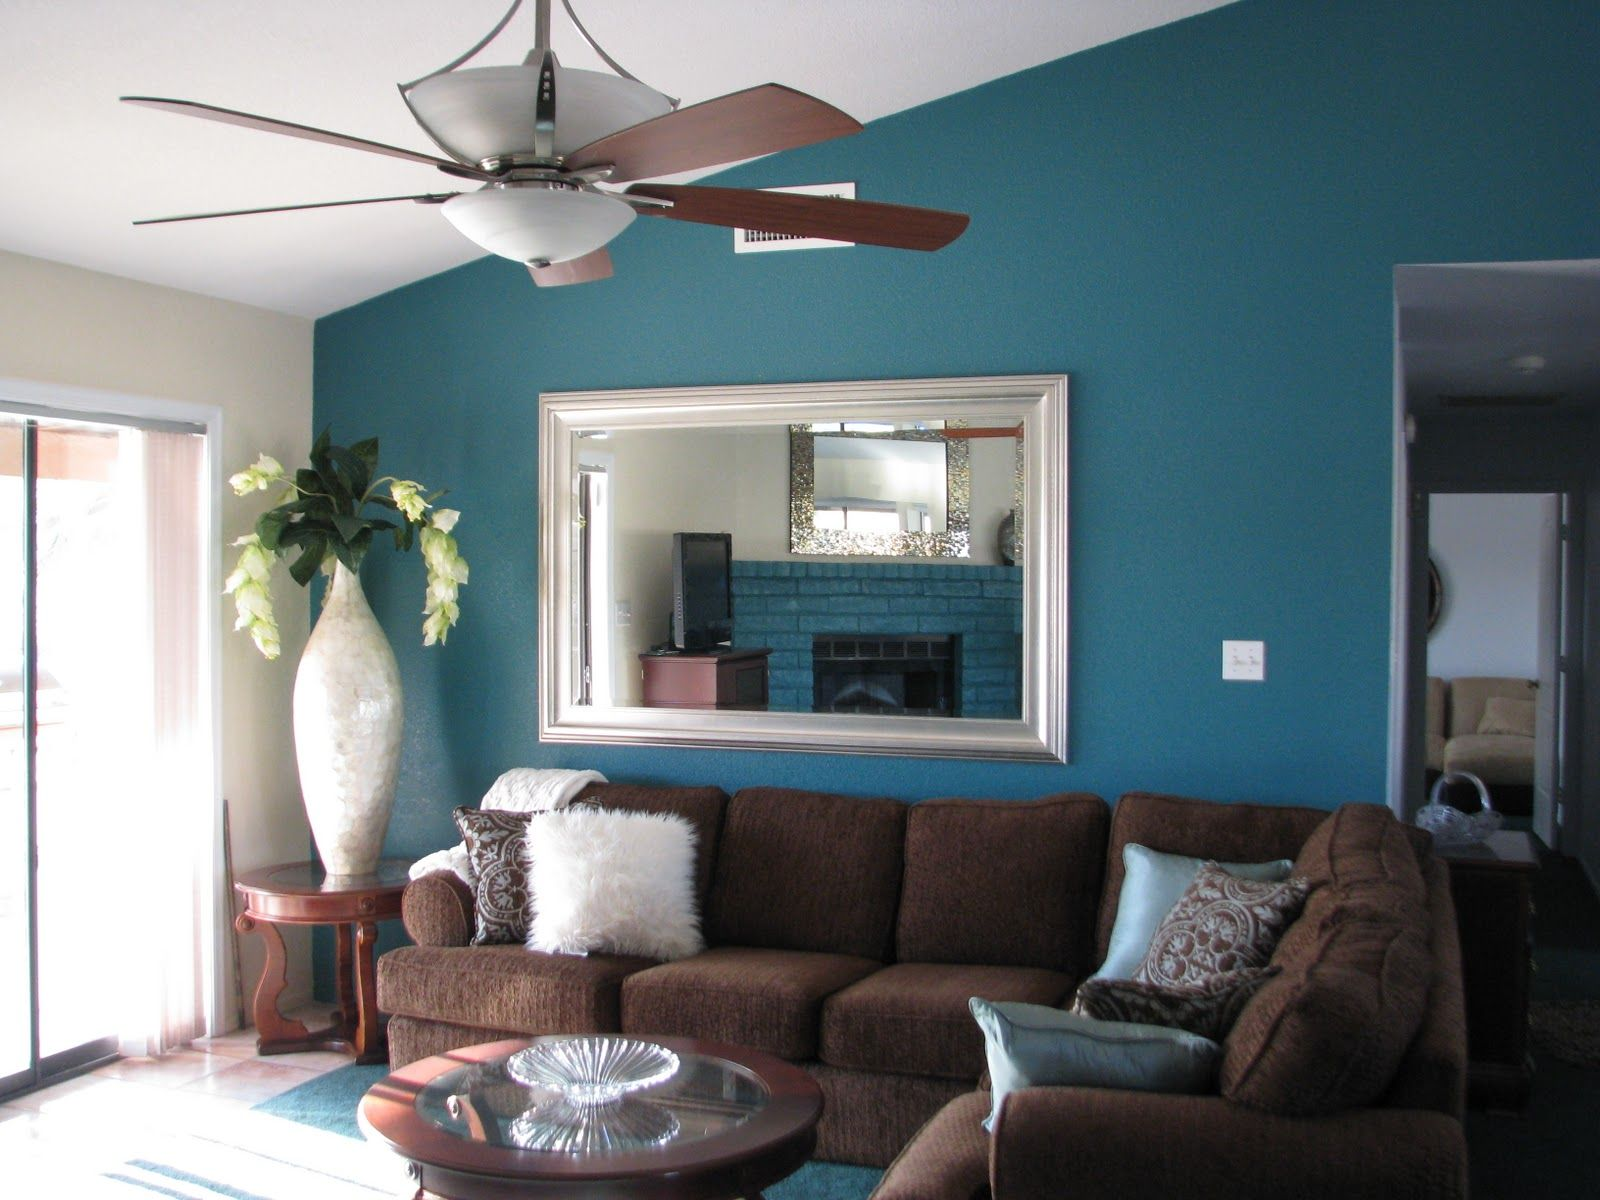 navy blue living room wall will looks harmonious with dark brown